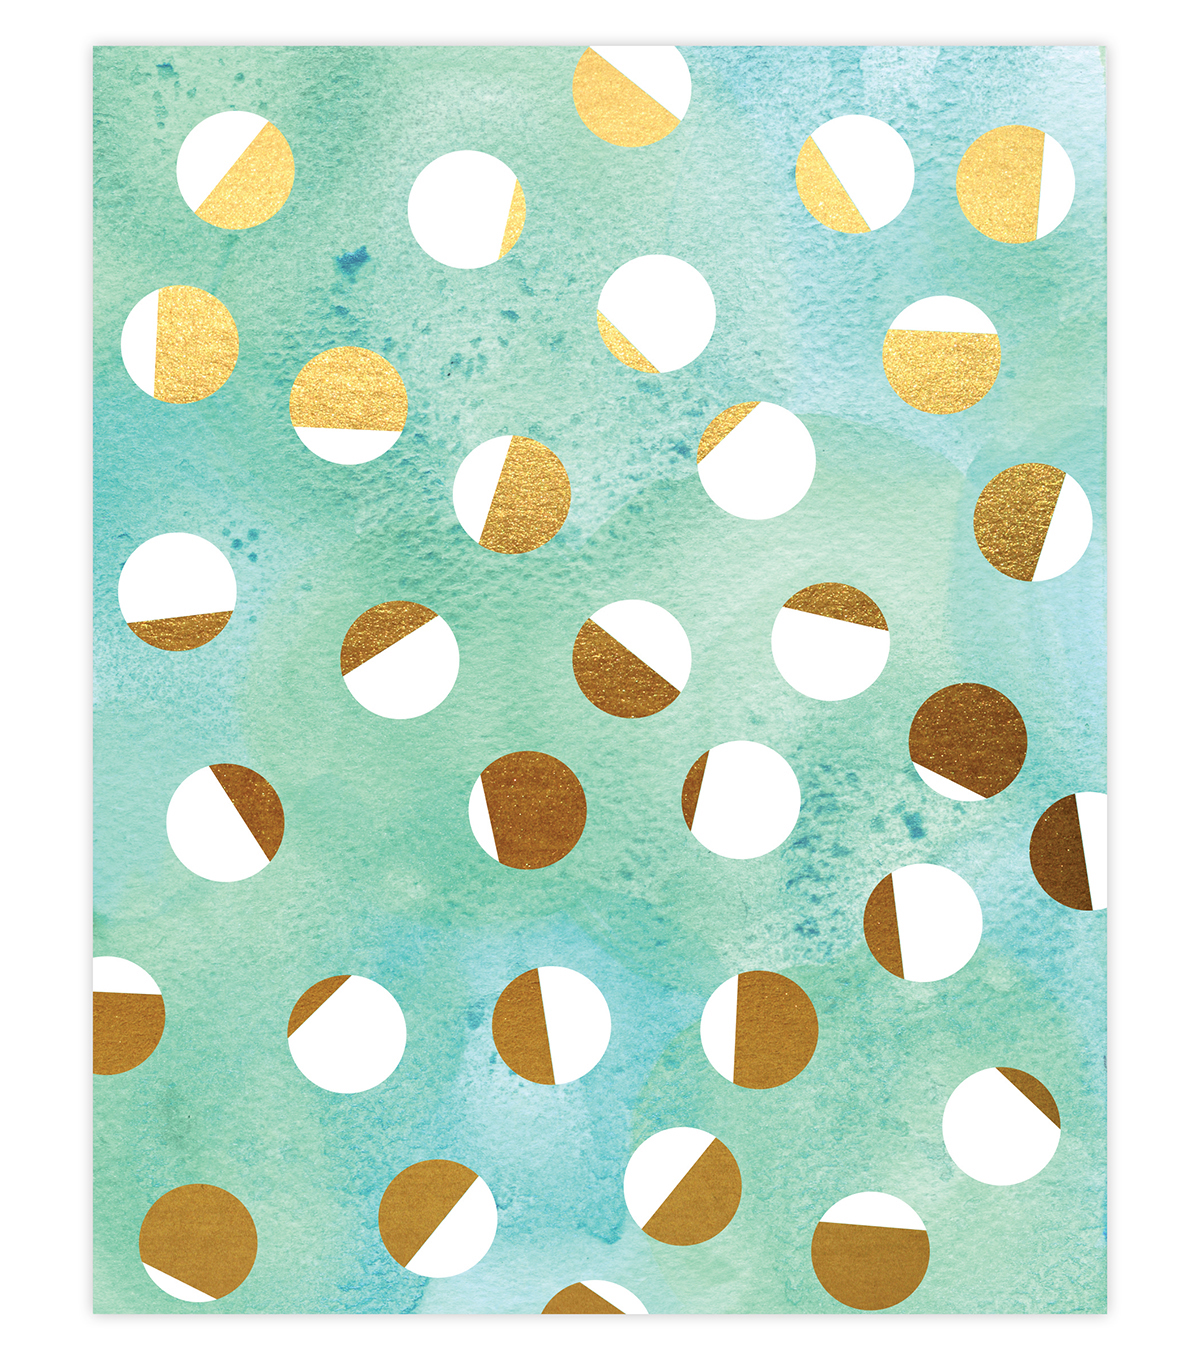 Creative Girl by Julie Comstock™ Watercolor Canvas Block Gold Dots